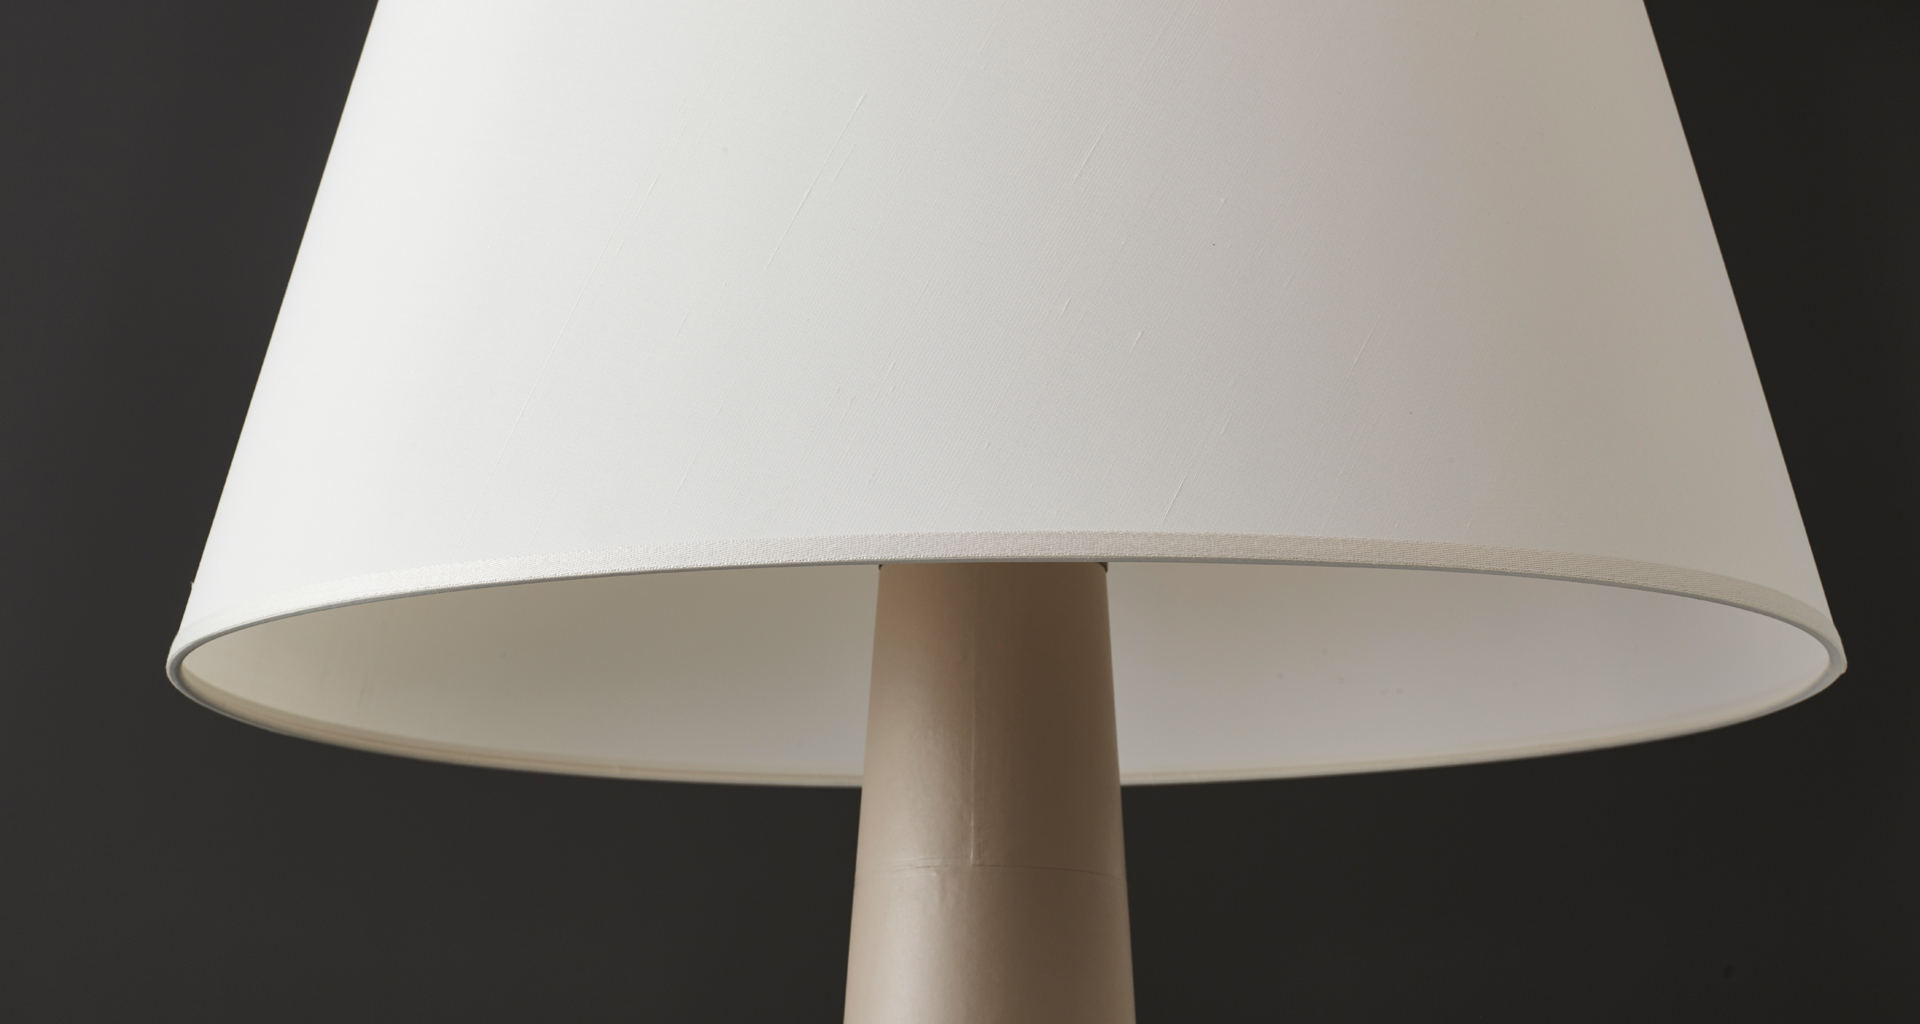 Lampshade detail of Pia, a floor LED lamp with wooden or leather structure, base n bronze or covered in leather and a hand-embroidered lampshade, from Promemoria's catalogue | Promemoria